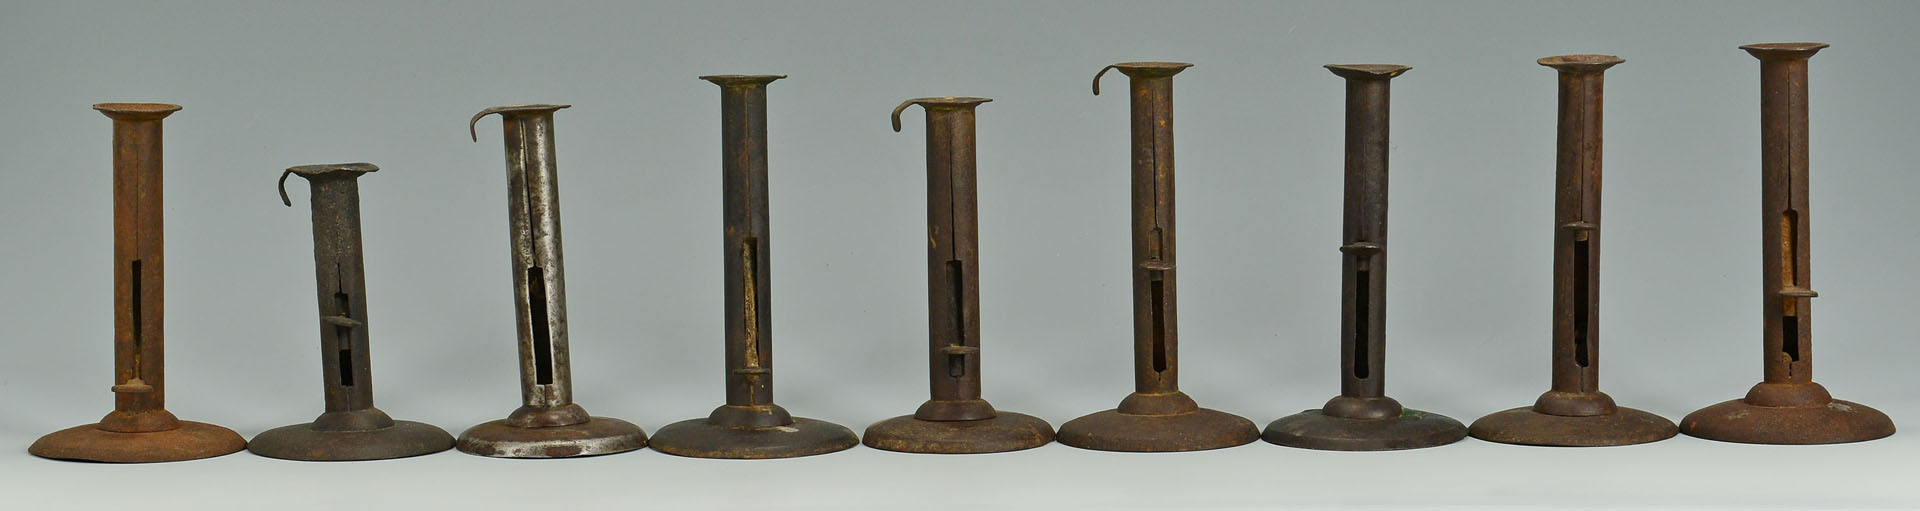 Grouping of Early Tin and Iron Lighting, 15 items